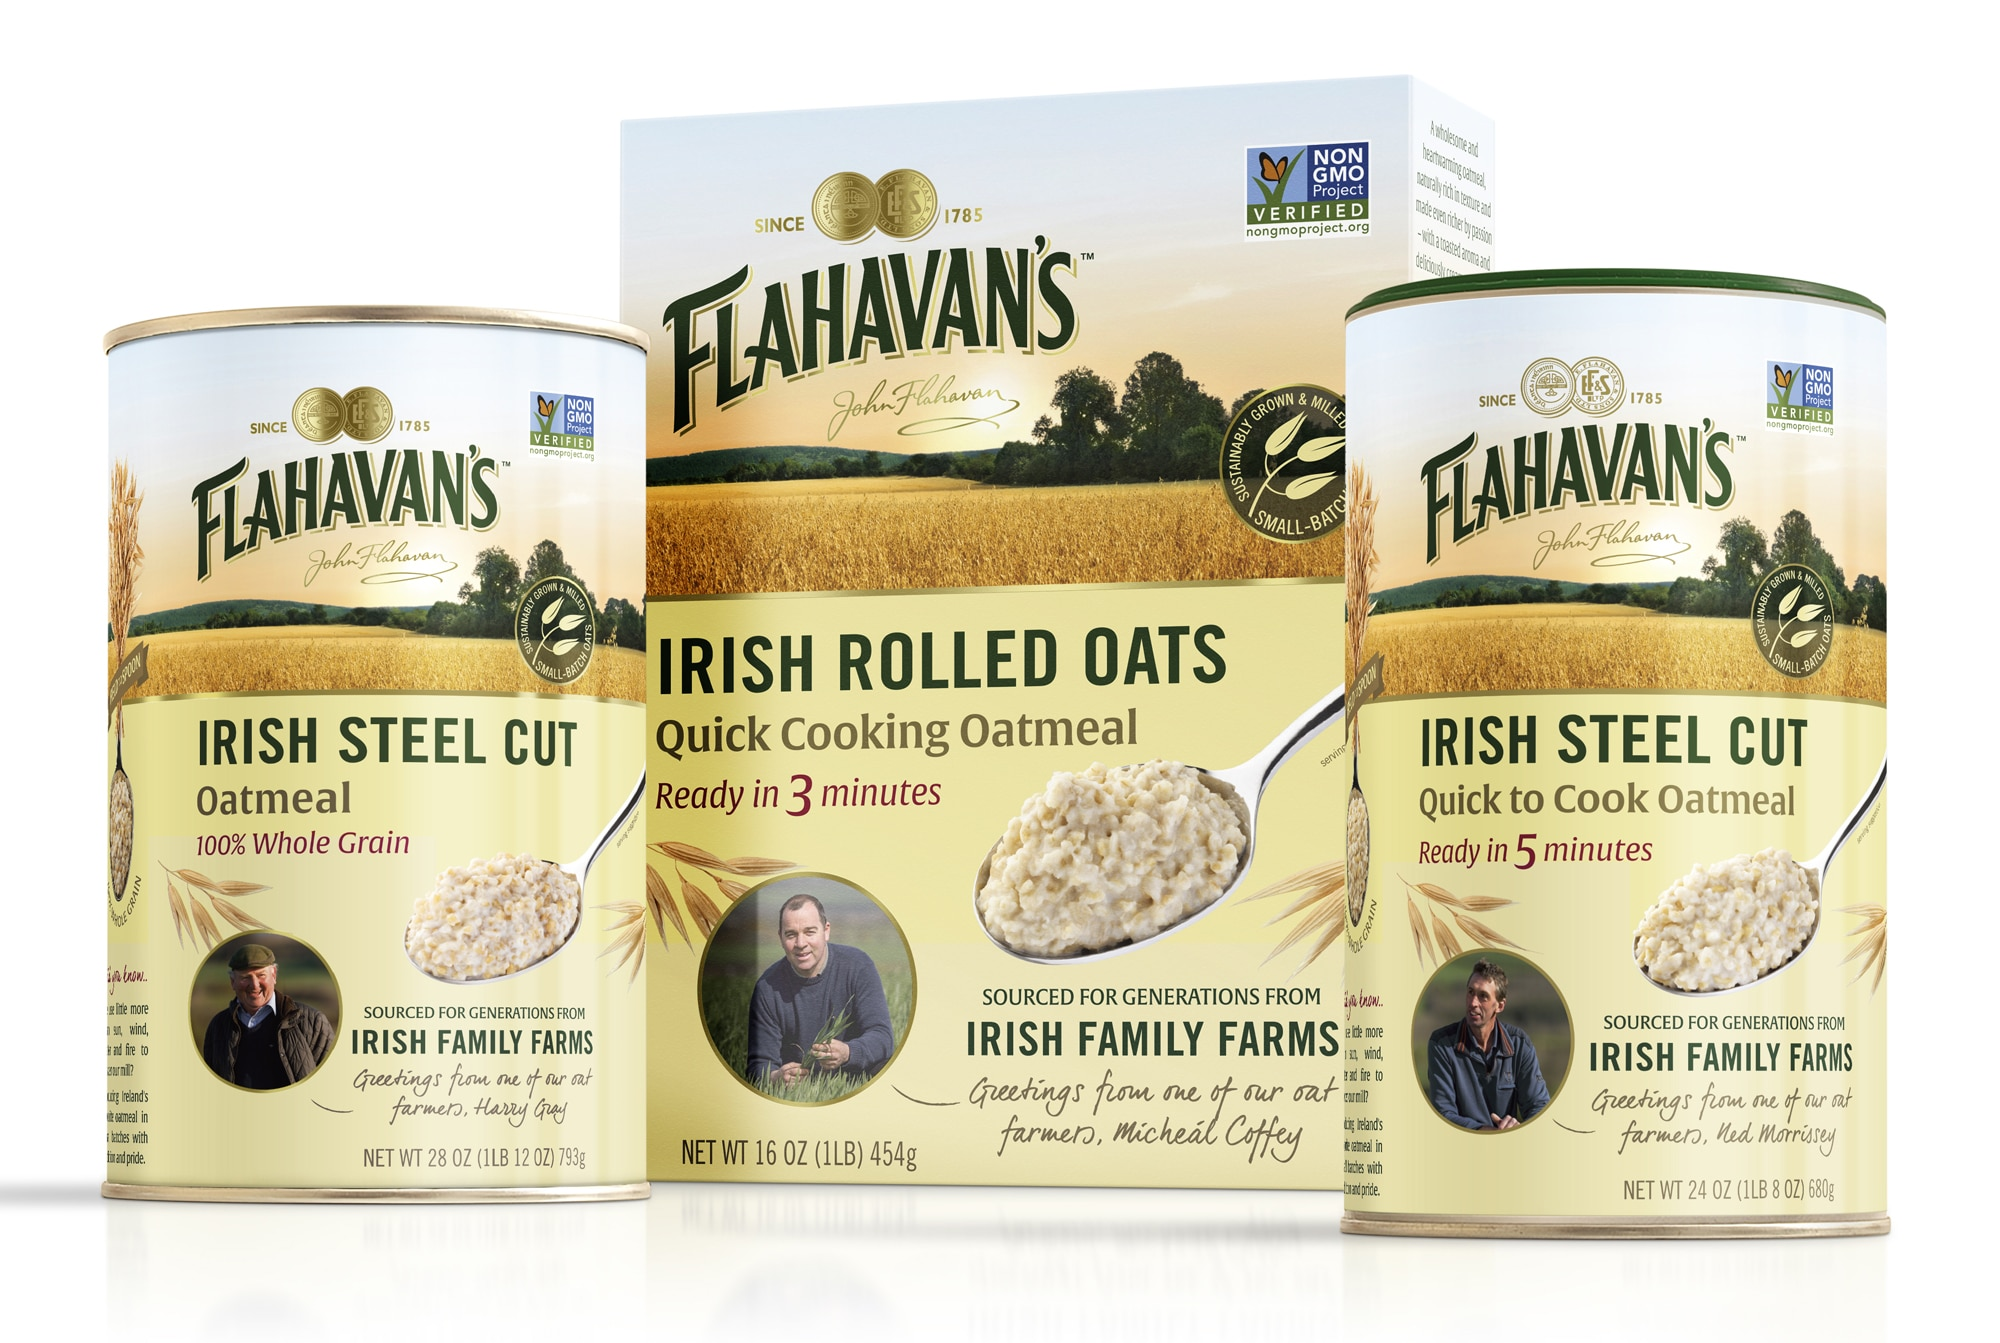 Flahavan's Irish Oats Rebrands